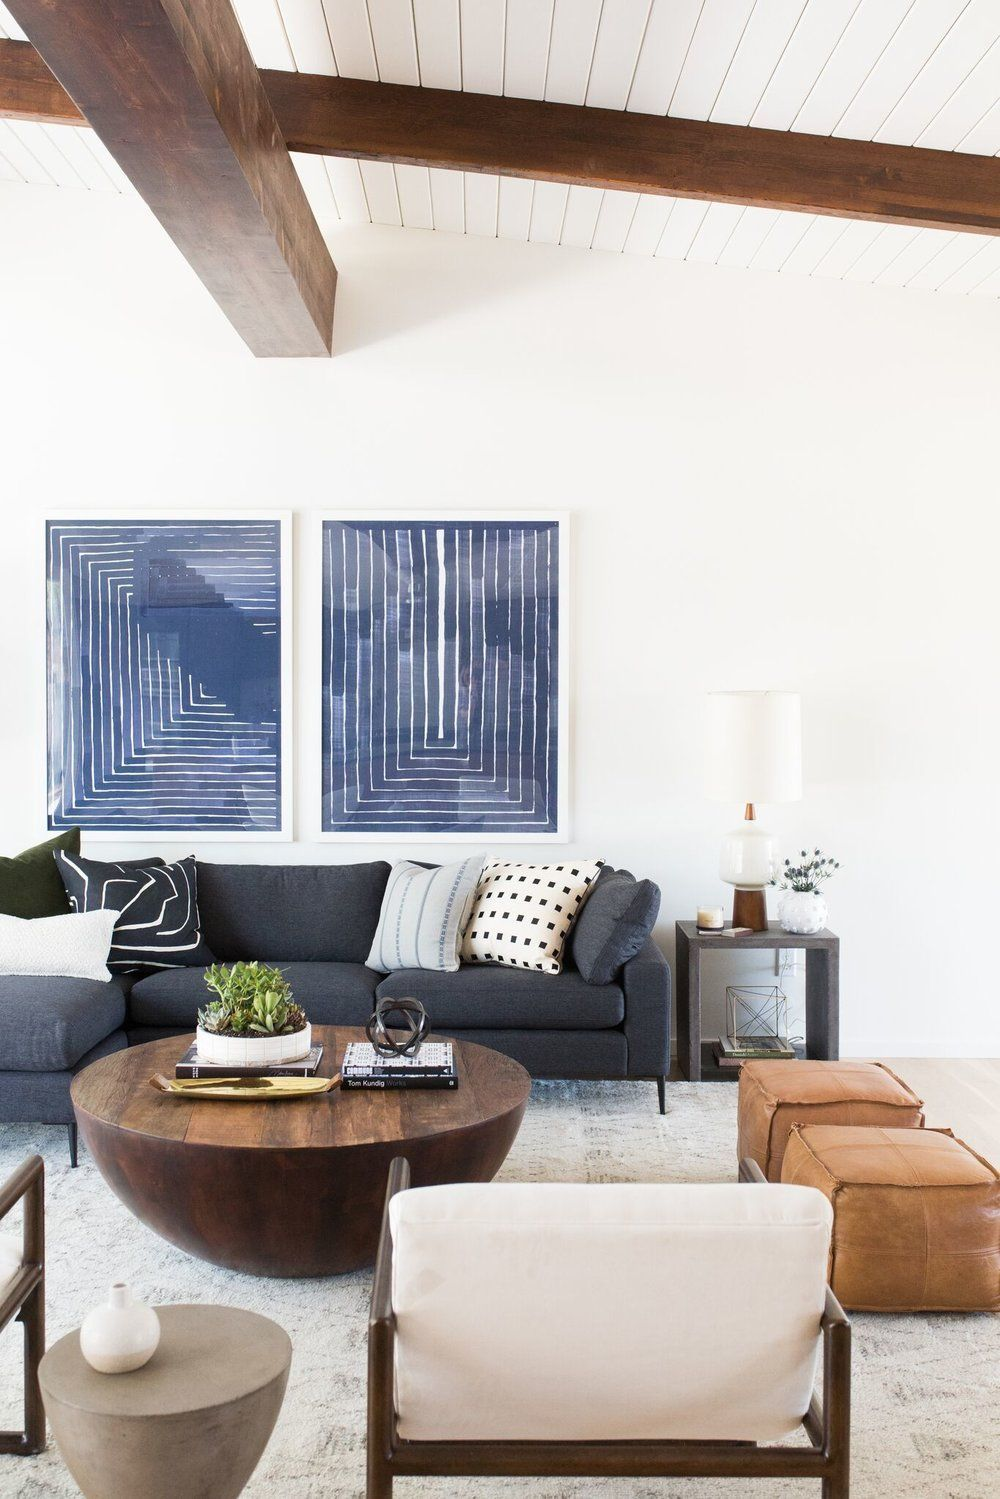 15 Lively Orange Living Room Design Ideas: 15 Coffee Table Décor Ideas For A More Lively Living Room